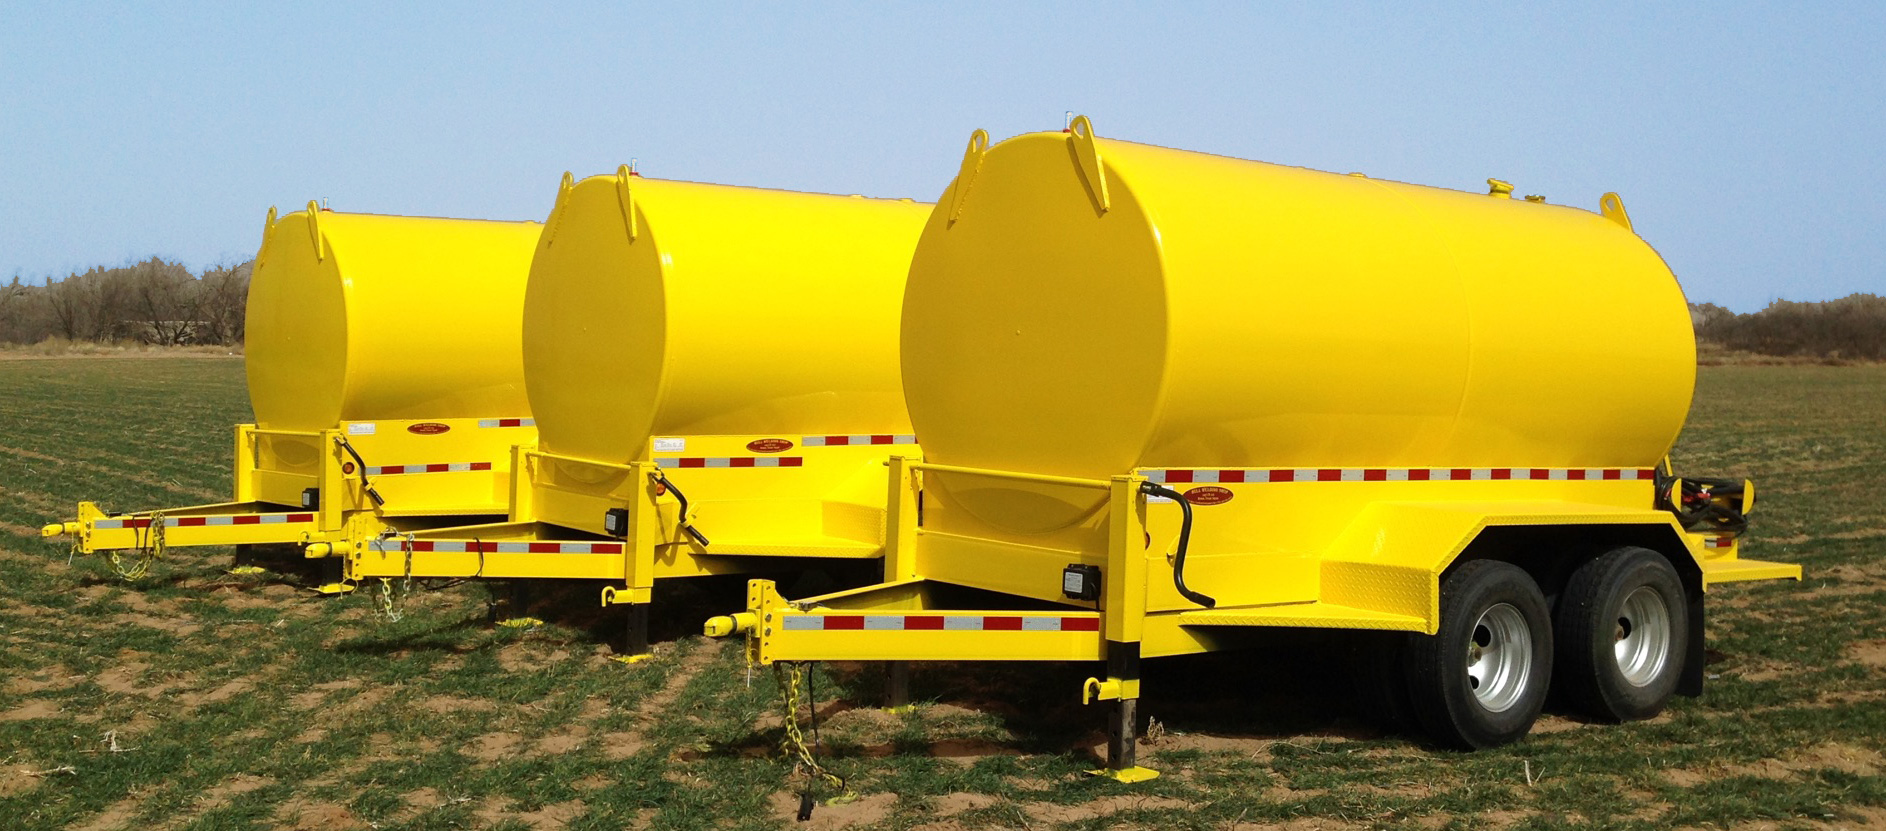 Hull 1000 gallon fuel tanks and trailers